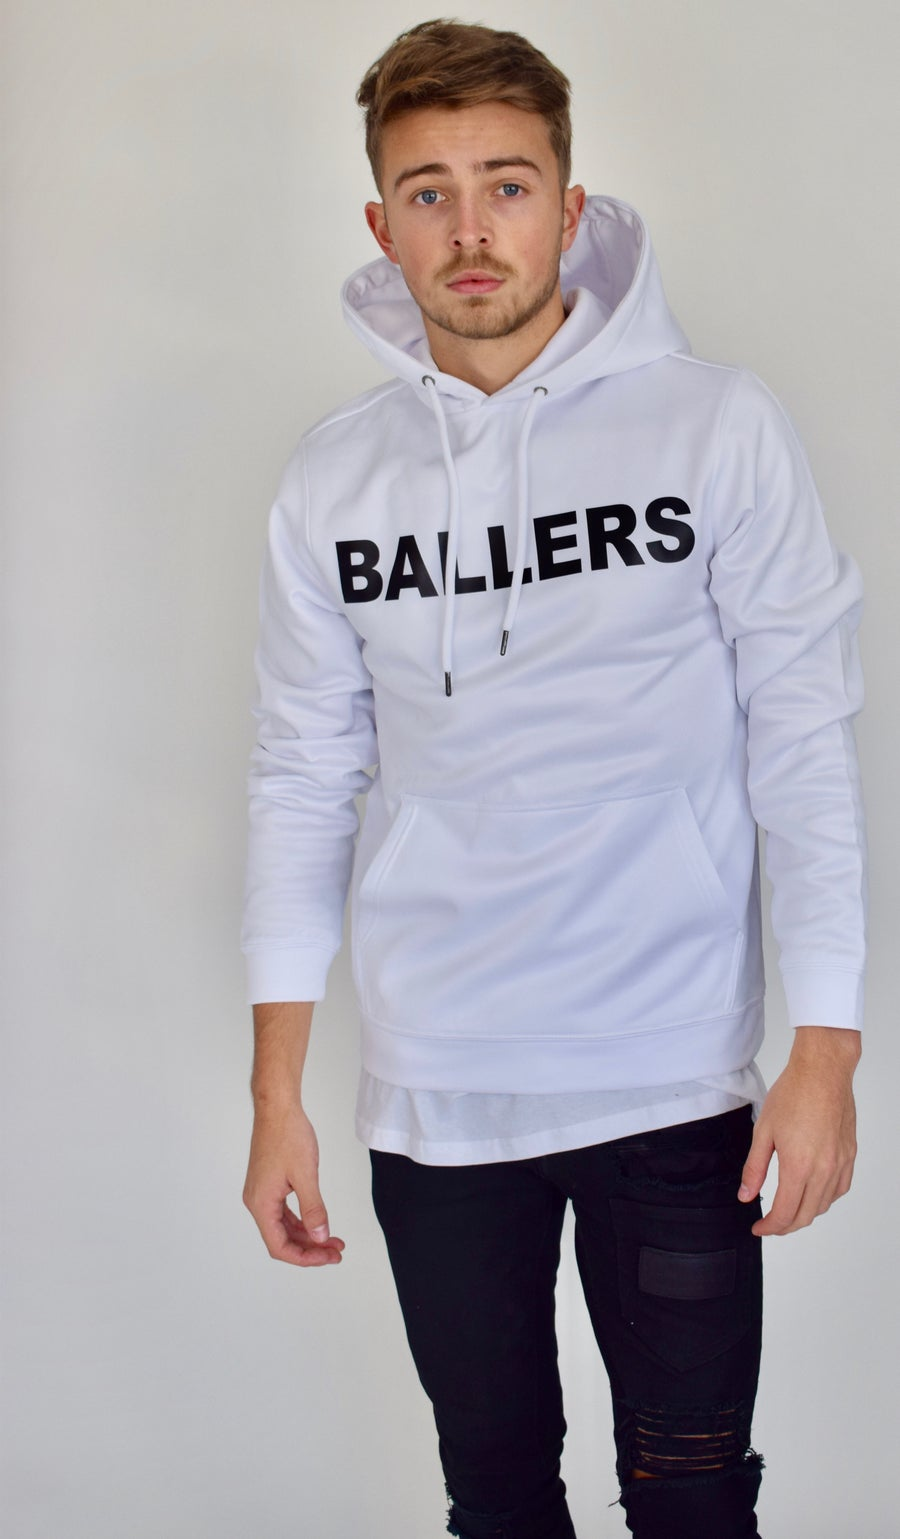 Image of Ballers Sports Artic White Pull Over